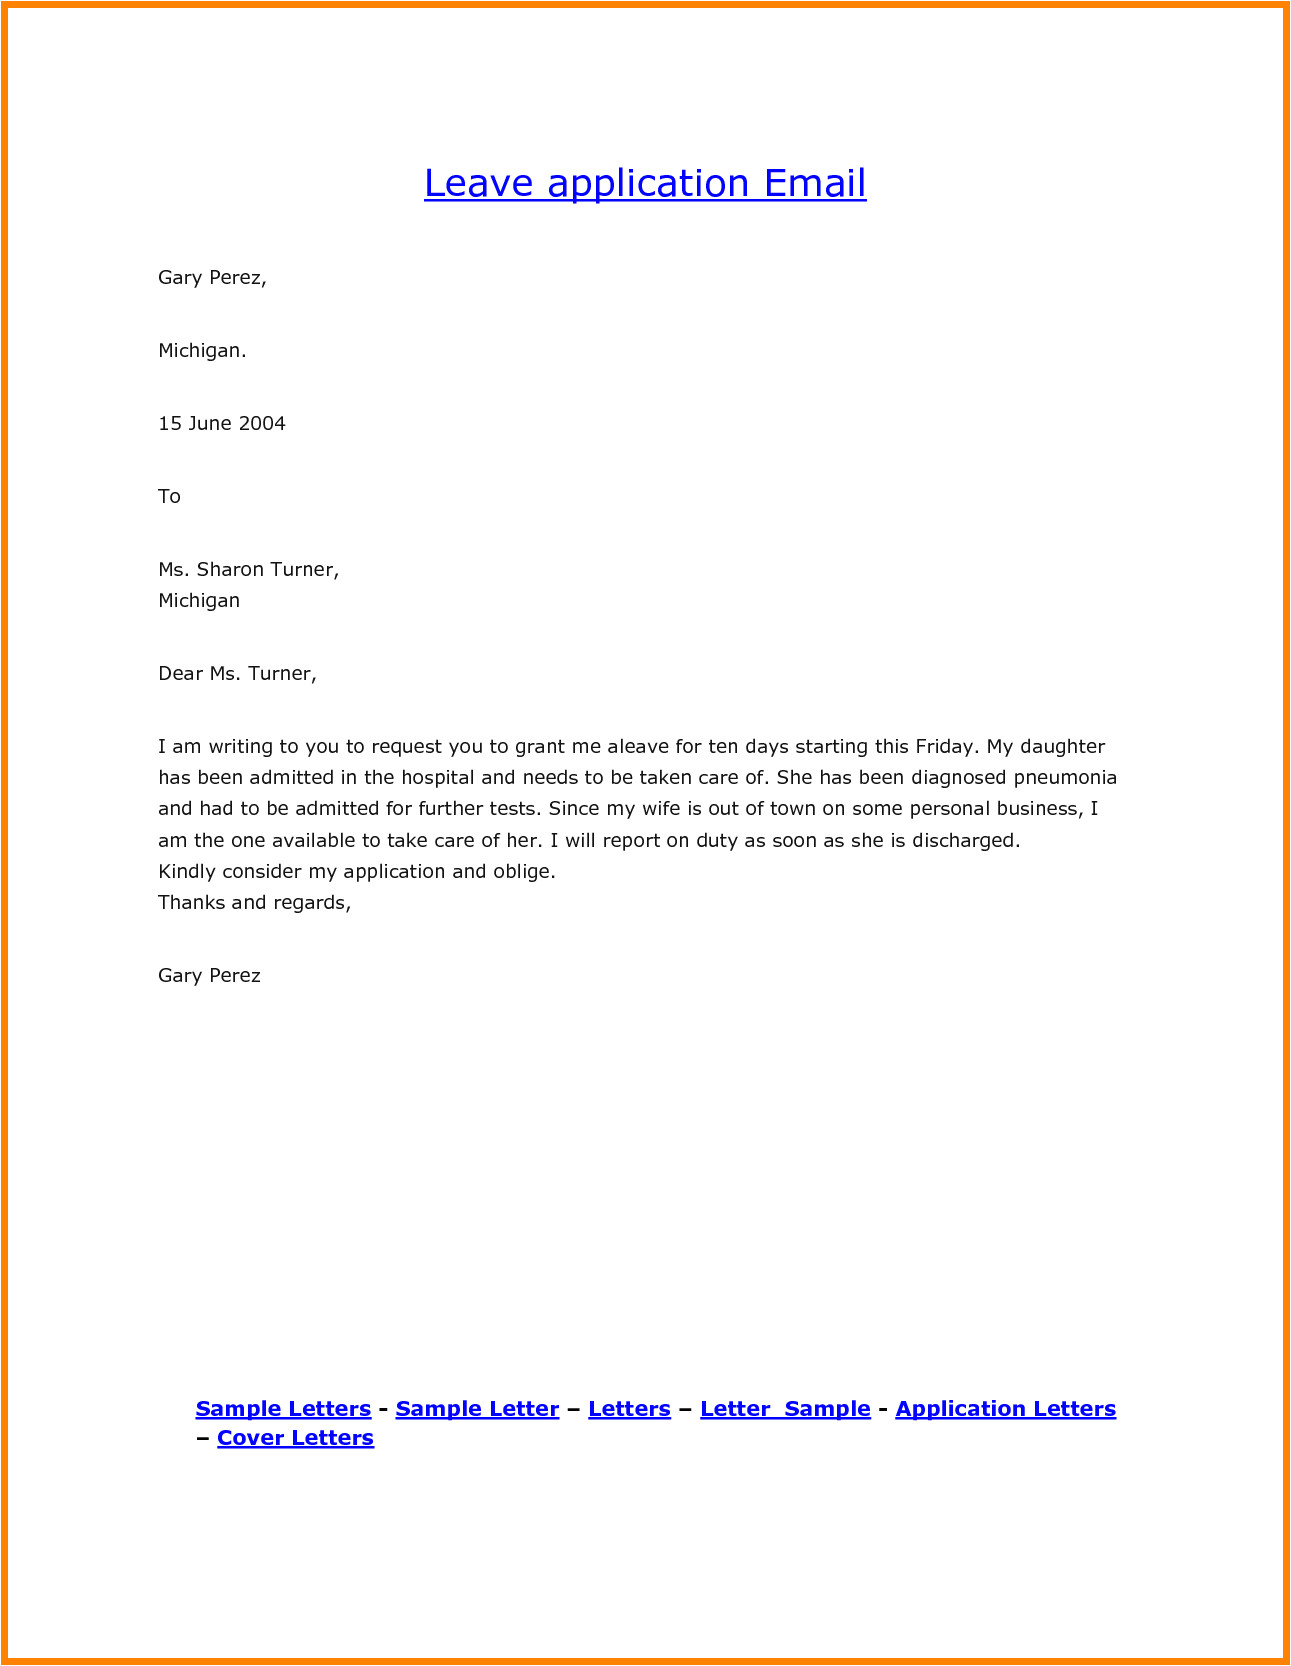 leave request email sample